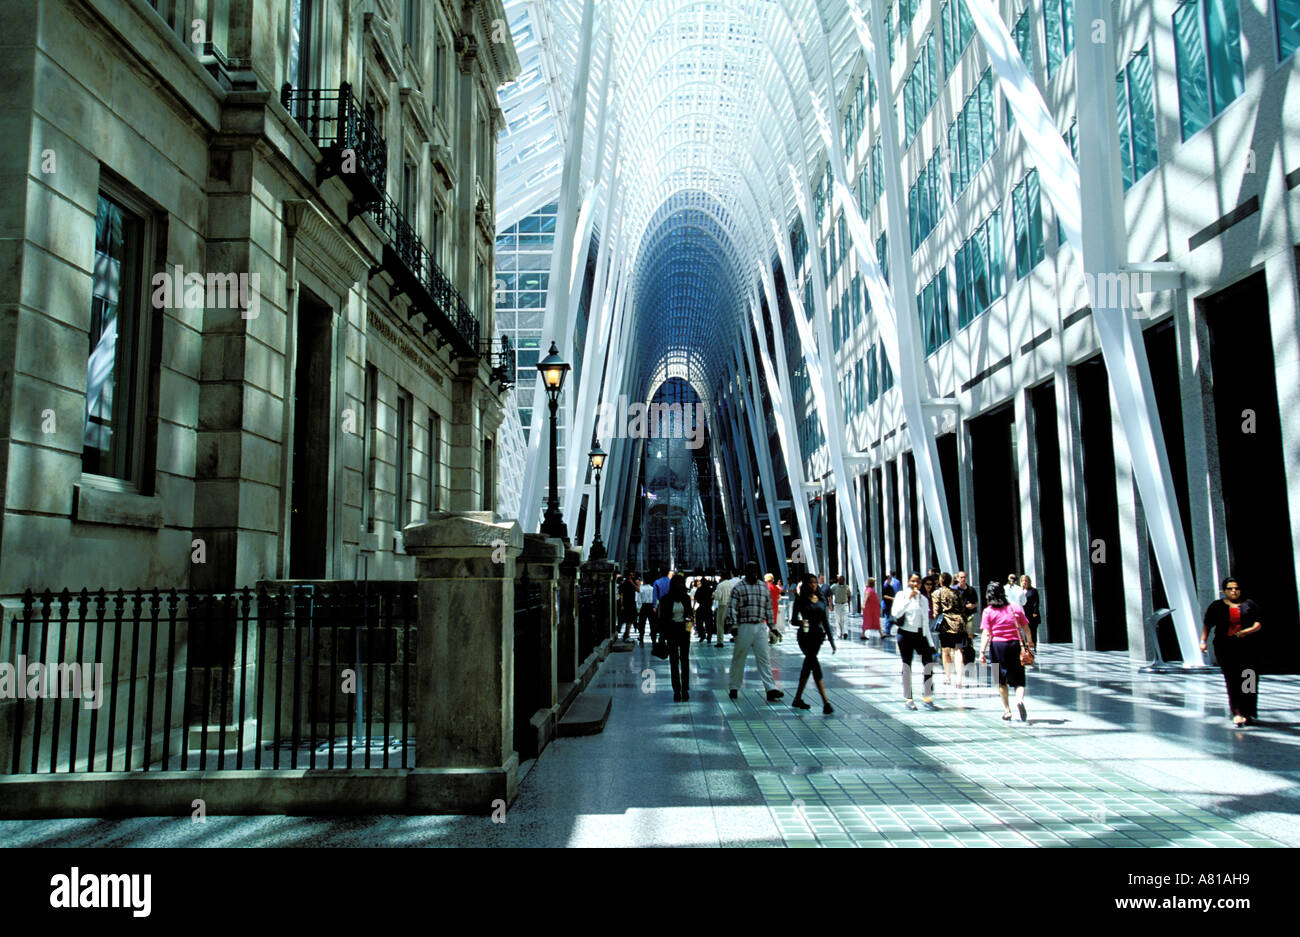 Canada, Ontario, Toronto, BCE Place, shopping mall and business district, La Galleria - Stock Image